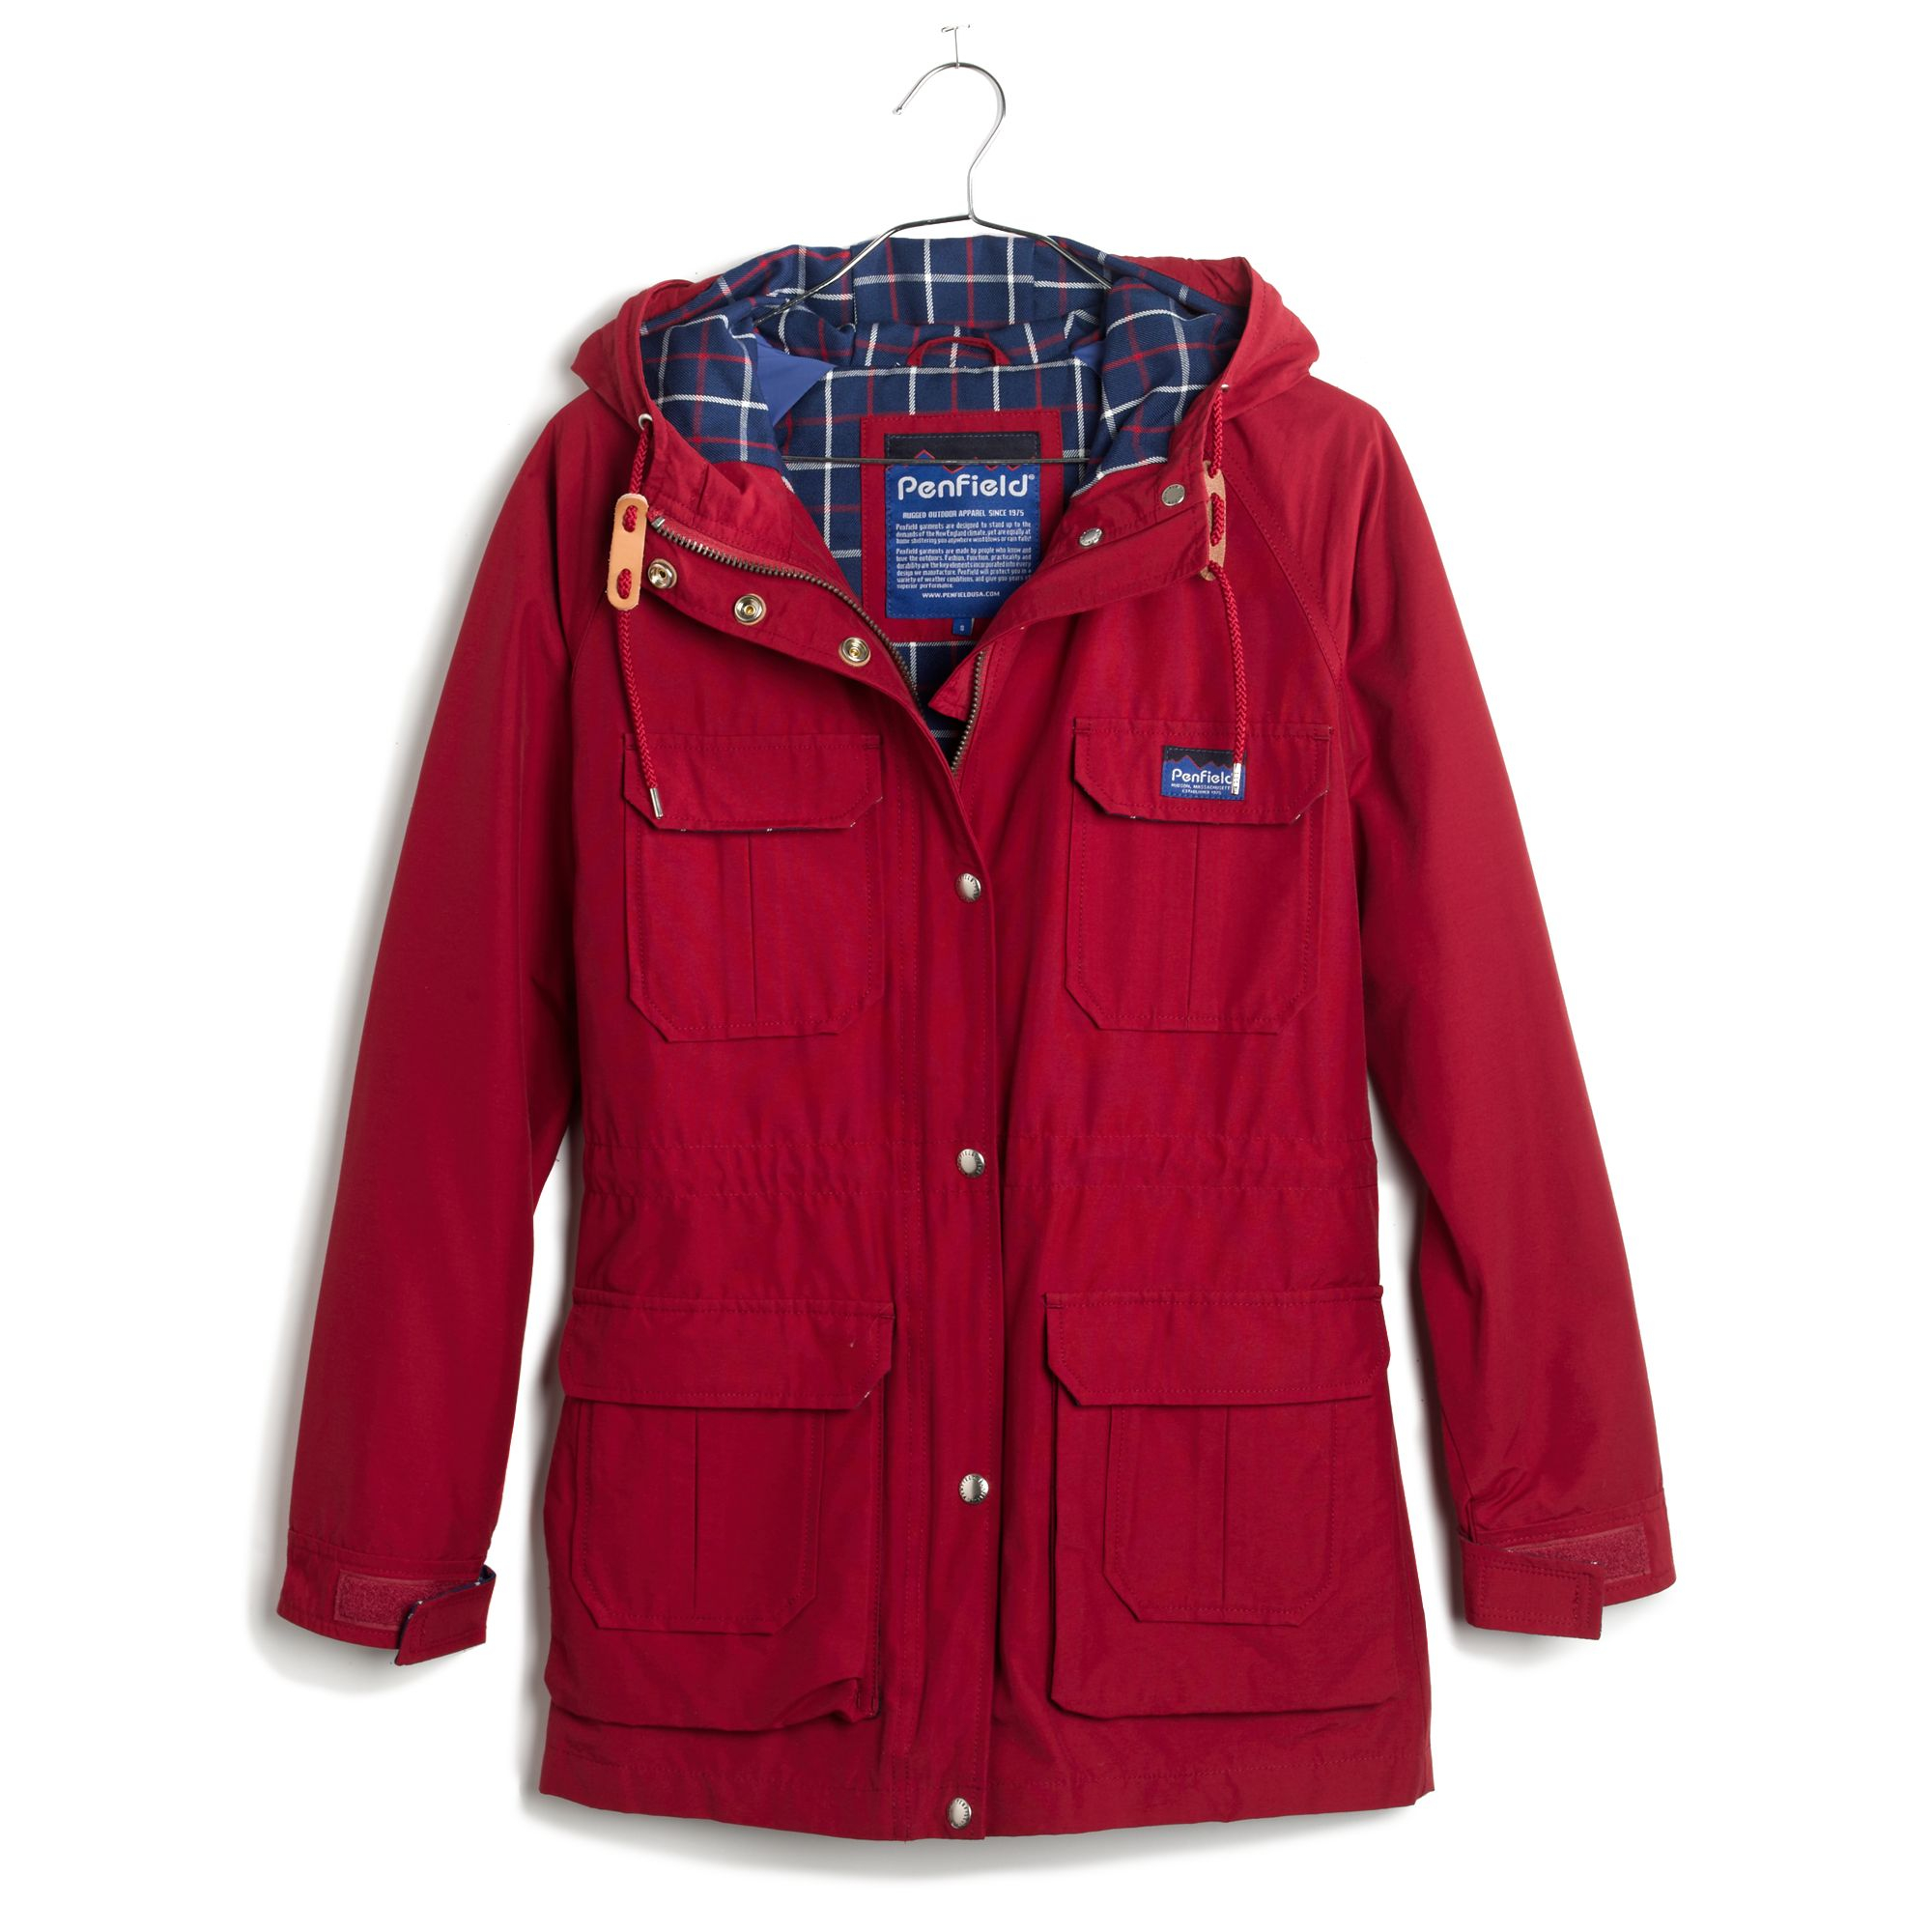 Madewell Penfield® Kasson Parka Jacket in Red | Lyst